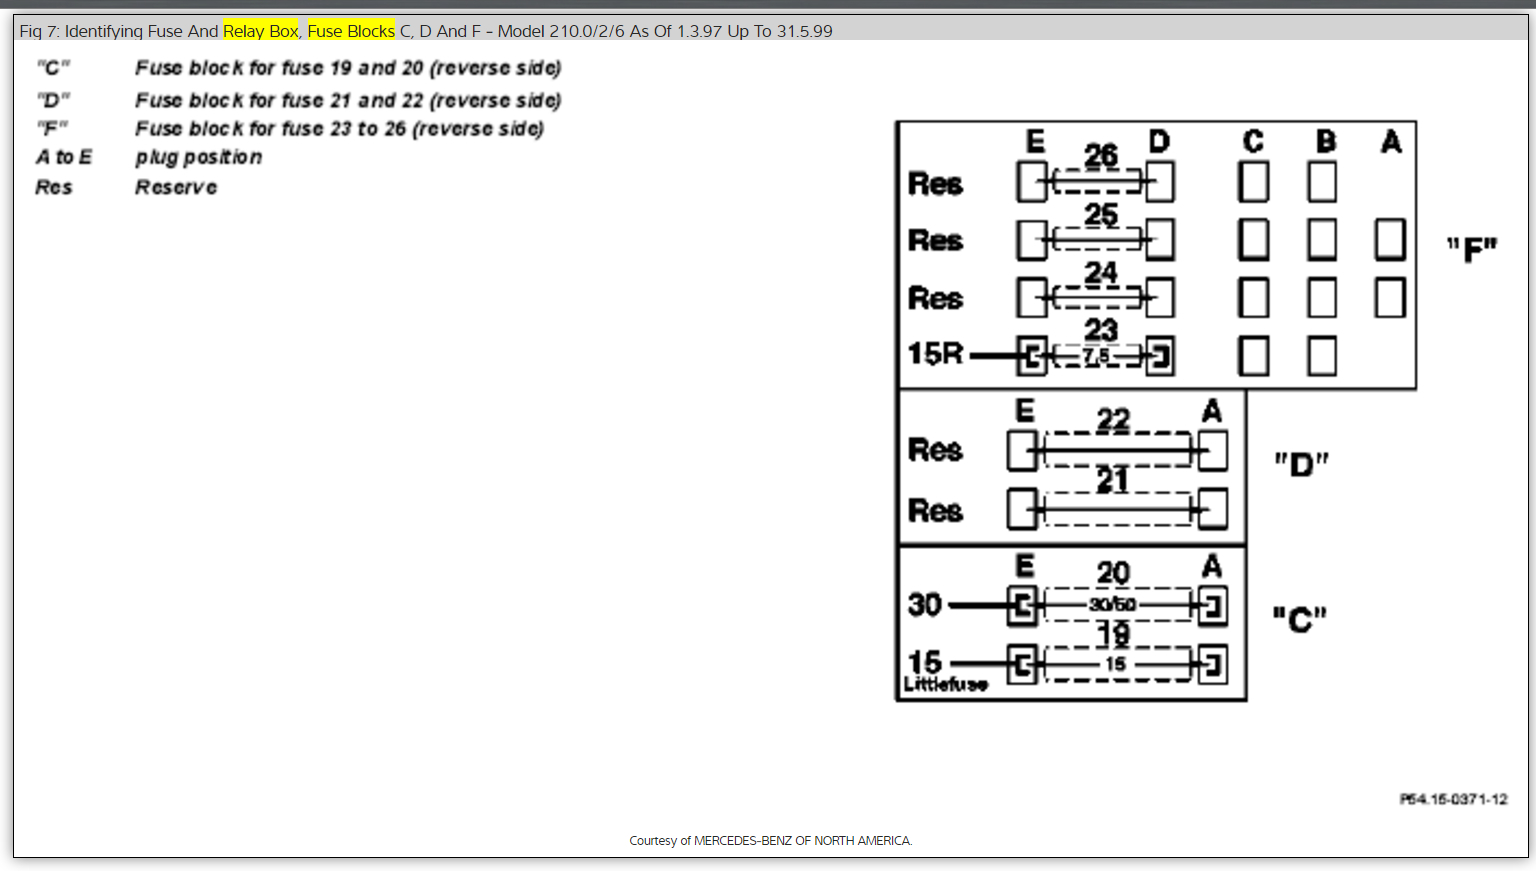 ba xr6 icc wiring diagram ford 3 8 engine fuse box 11 images diagrams